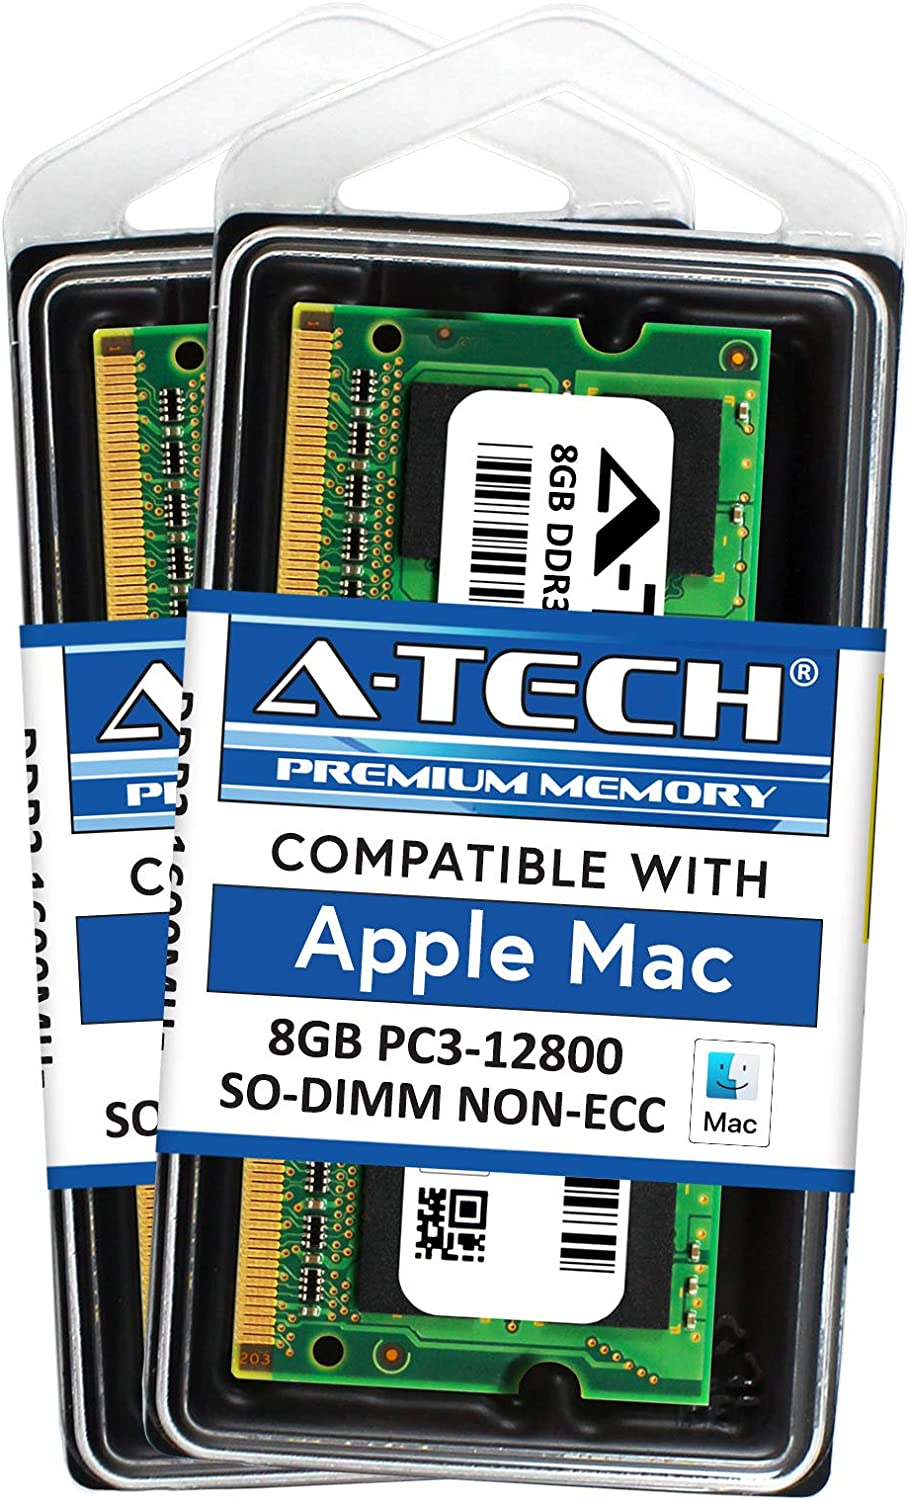 A-Tech for Apple 16GB Kit 2 x 8GB PC3-12800 Mac Mini iMac Late 2013 Late 2012 ME086LL/A A1418 ME087LL/A ME088LL/A A1419 ME089LL/A MF886LL/A MF885LL/A MD387LL/A A1347 MD388LL/A MD389LL/A Memory RAM